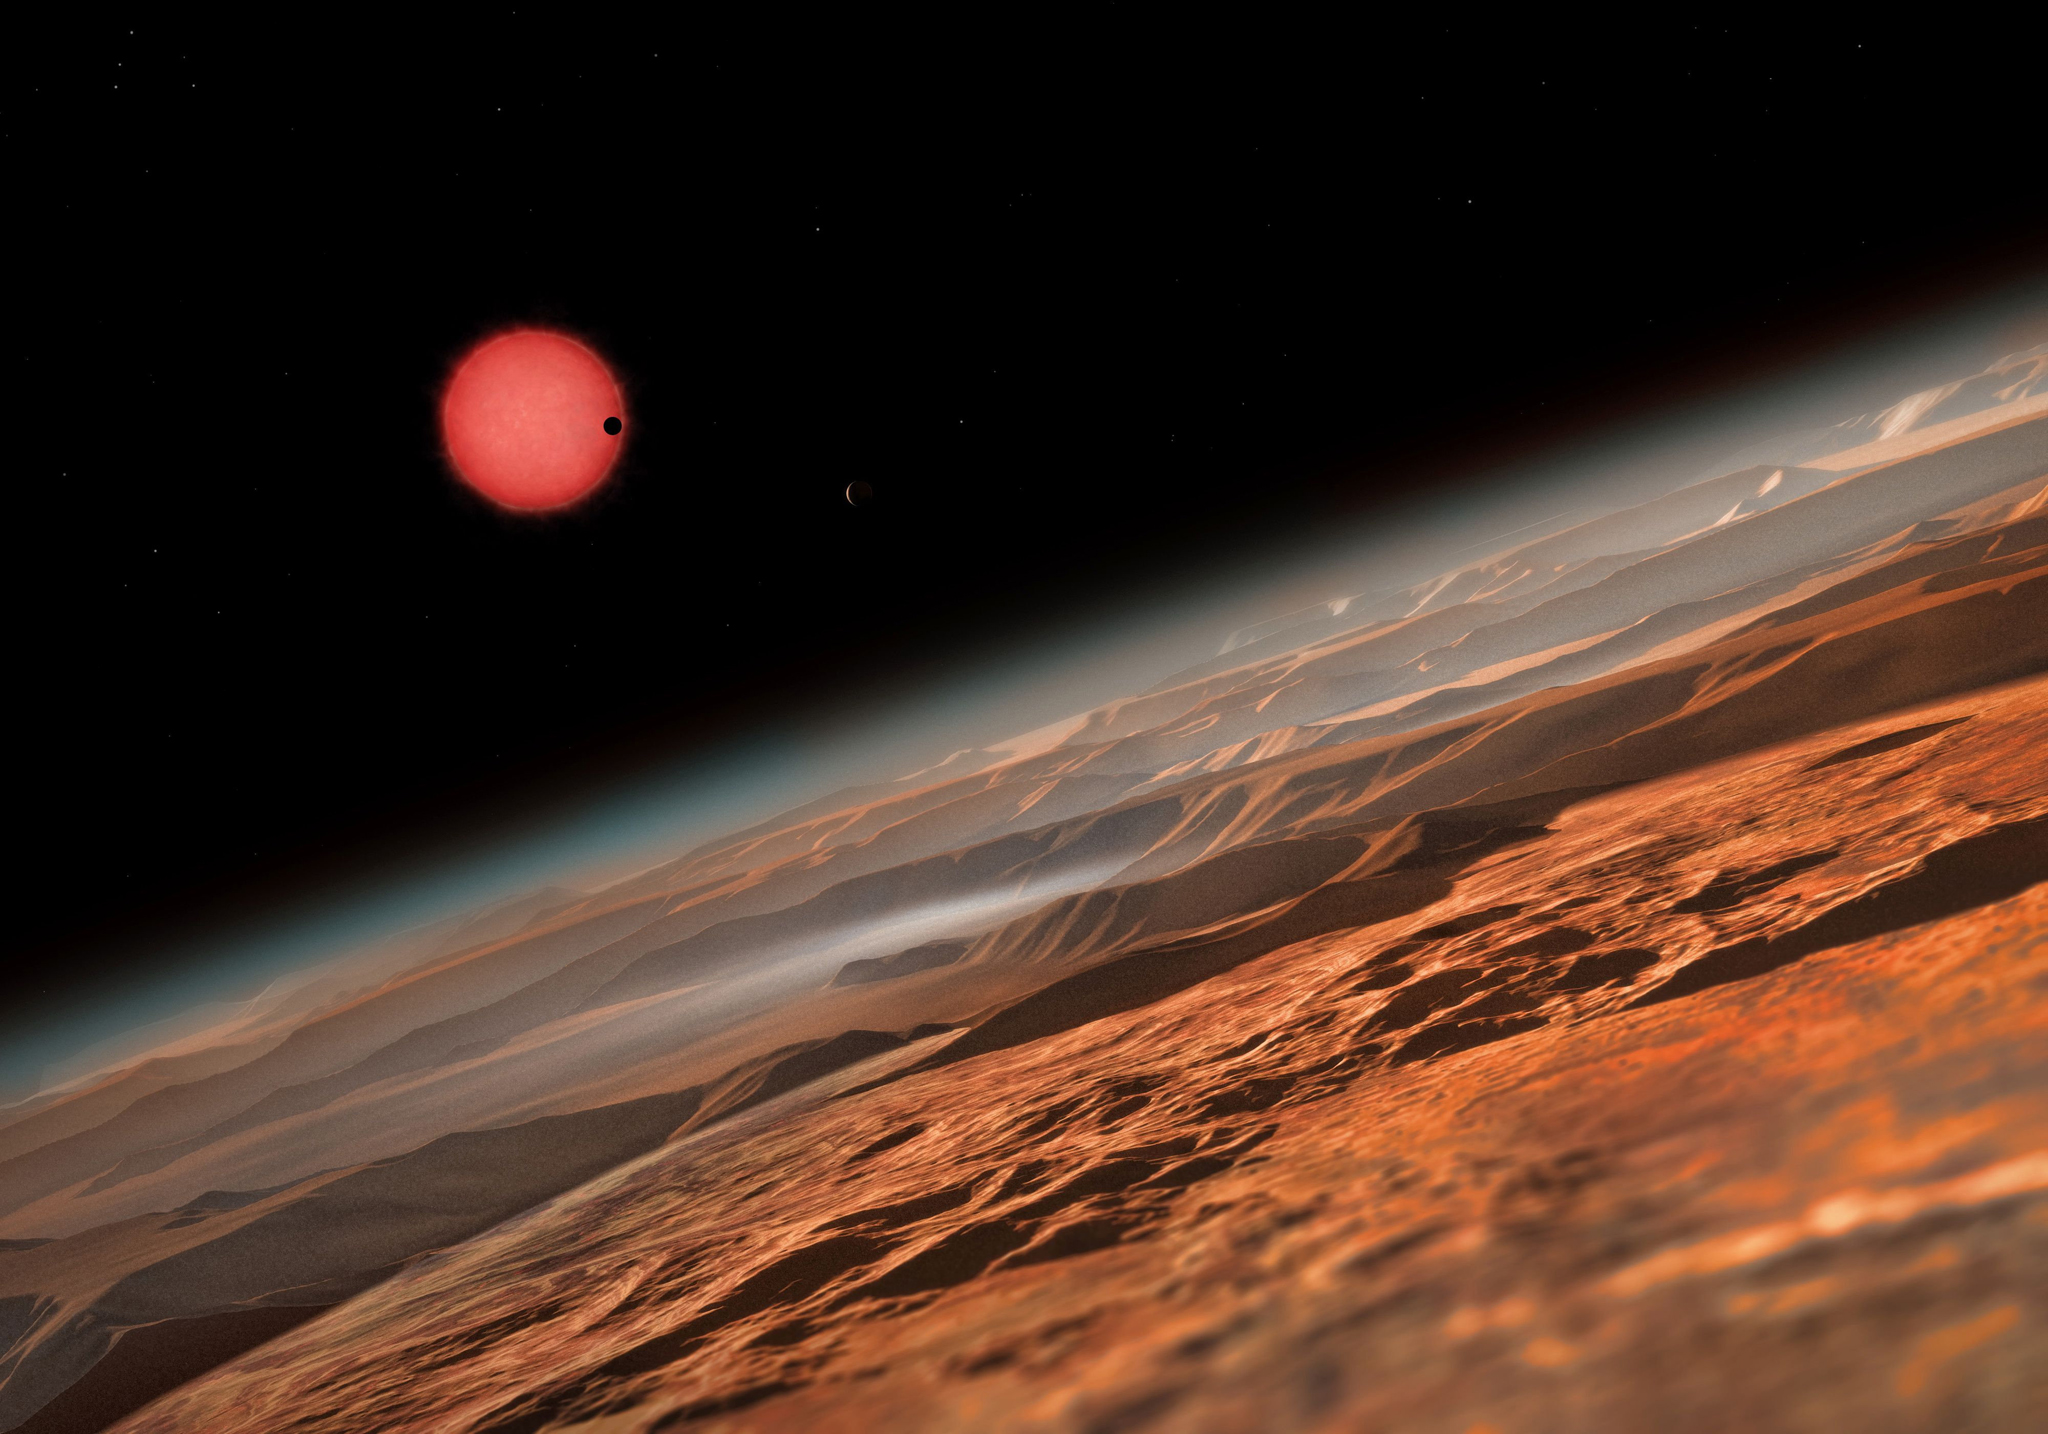 "An artists impression released by the the European Southern Observatory (ESO) on May 2, 2016 shows an imagined view from close to one of the three planets orbiting an ultracool dwarf star just 40 light-years from Earth that were discovered using the TRAPPIST (""TRAnsiting Planets and PlanetesImals Small Telescope"") telescope at ESOs La Silla Observatory in Chile. These worlds have sizes and temperatures similar to those of Venus and Earth and are the best targets found so far for the search for life outside the Solar System. They are the first planets ever discovered around such a tiny and dim star. In this view one of the inner planets is seen in transit across the disc of its tiny and dim parent star."